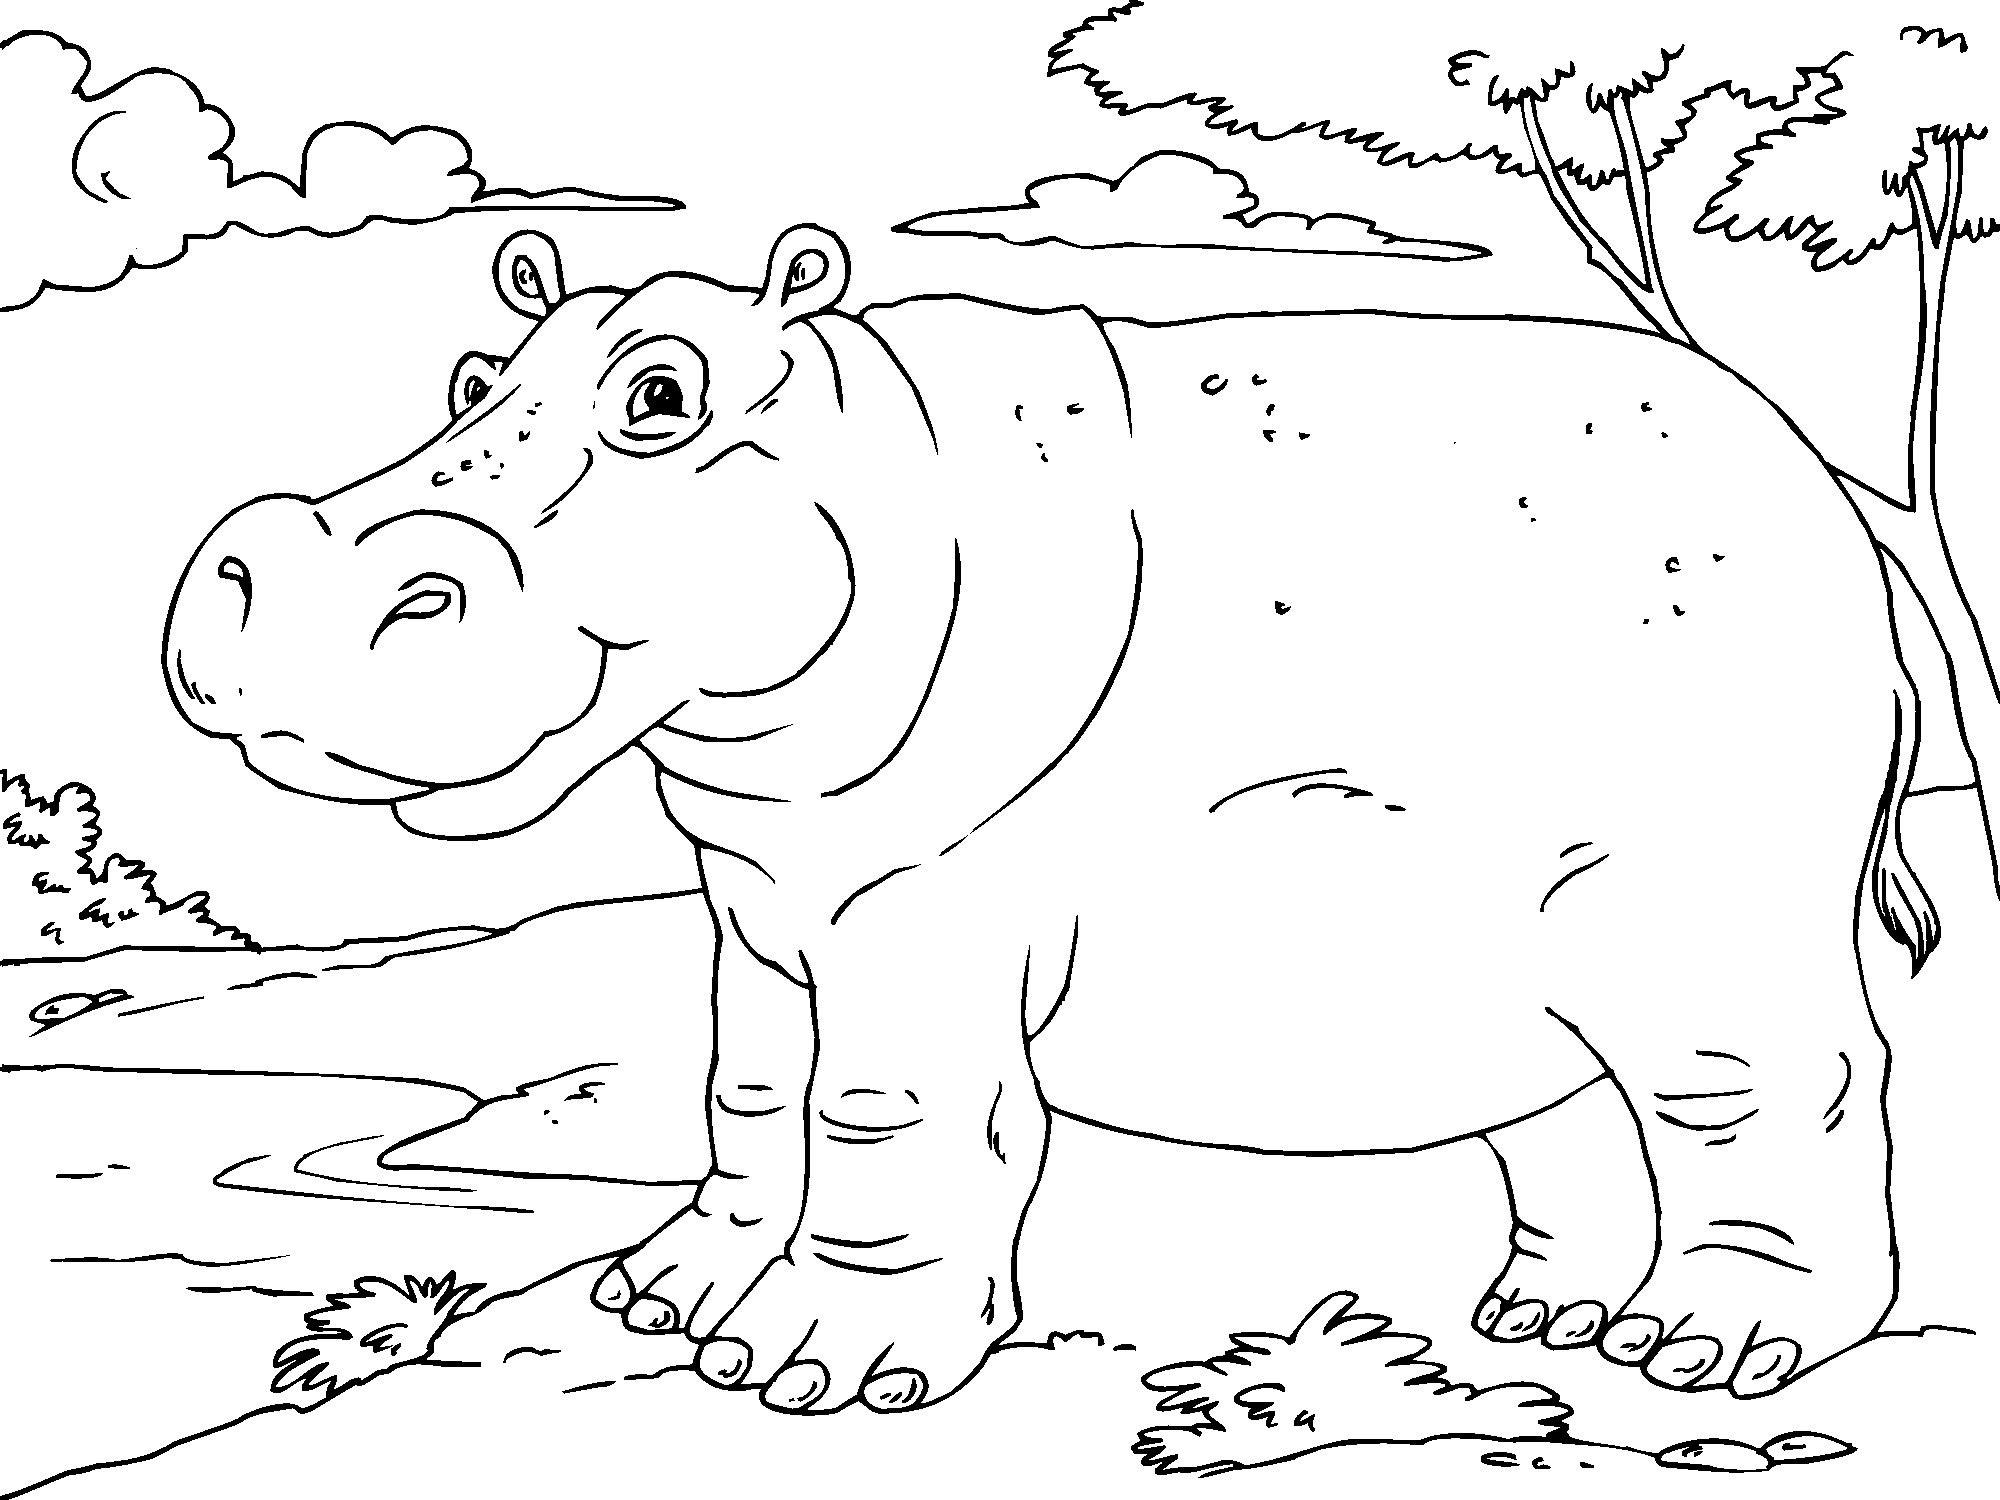 hippopotamus coloring pages cute hippo coloring pages to kids hippopotamus coloring pages